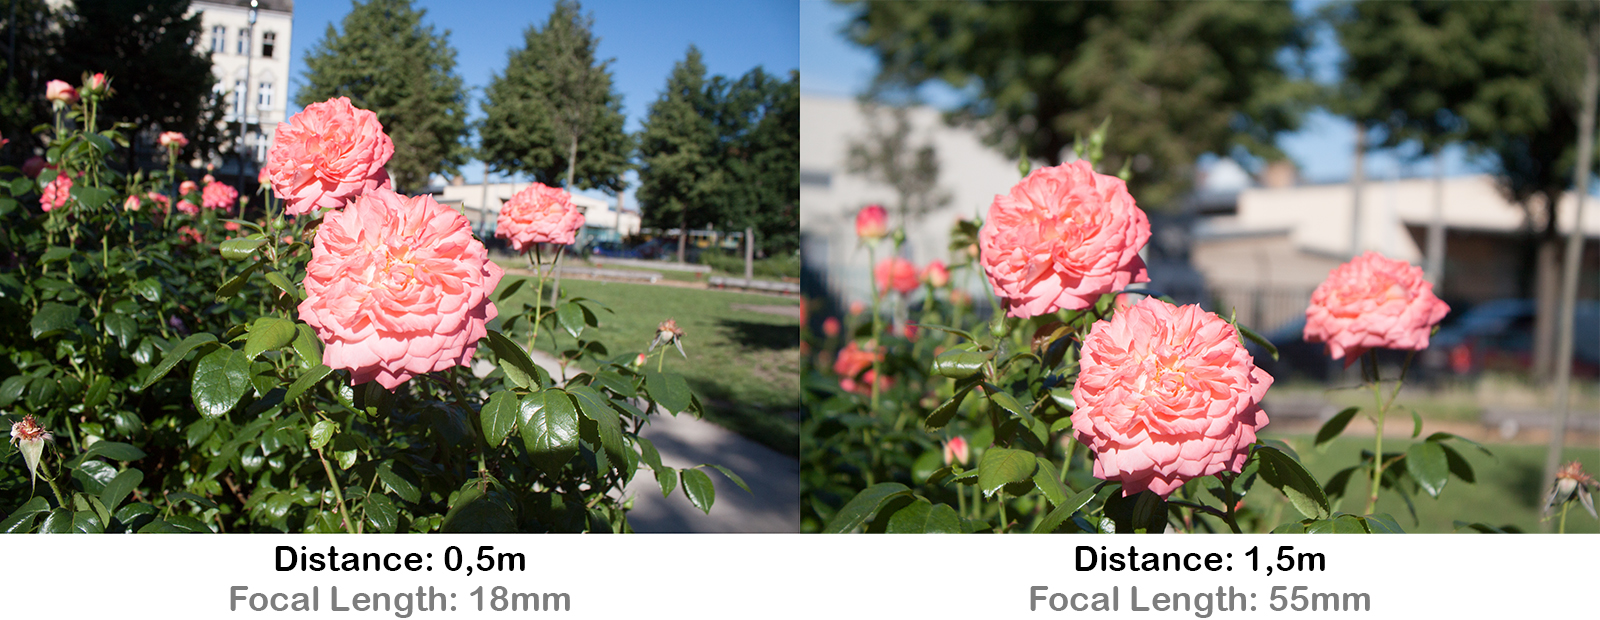 example rose in foreground and trees in background perspective distortion